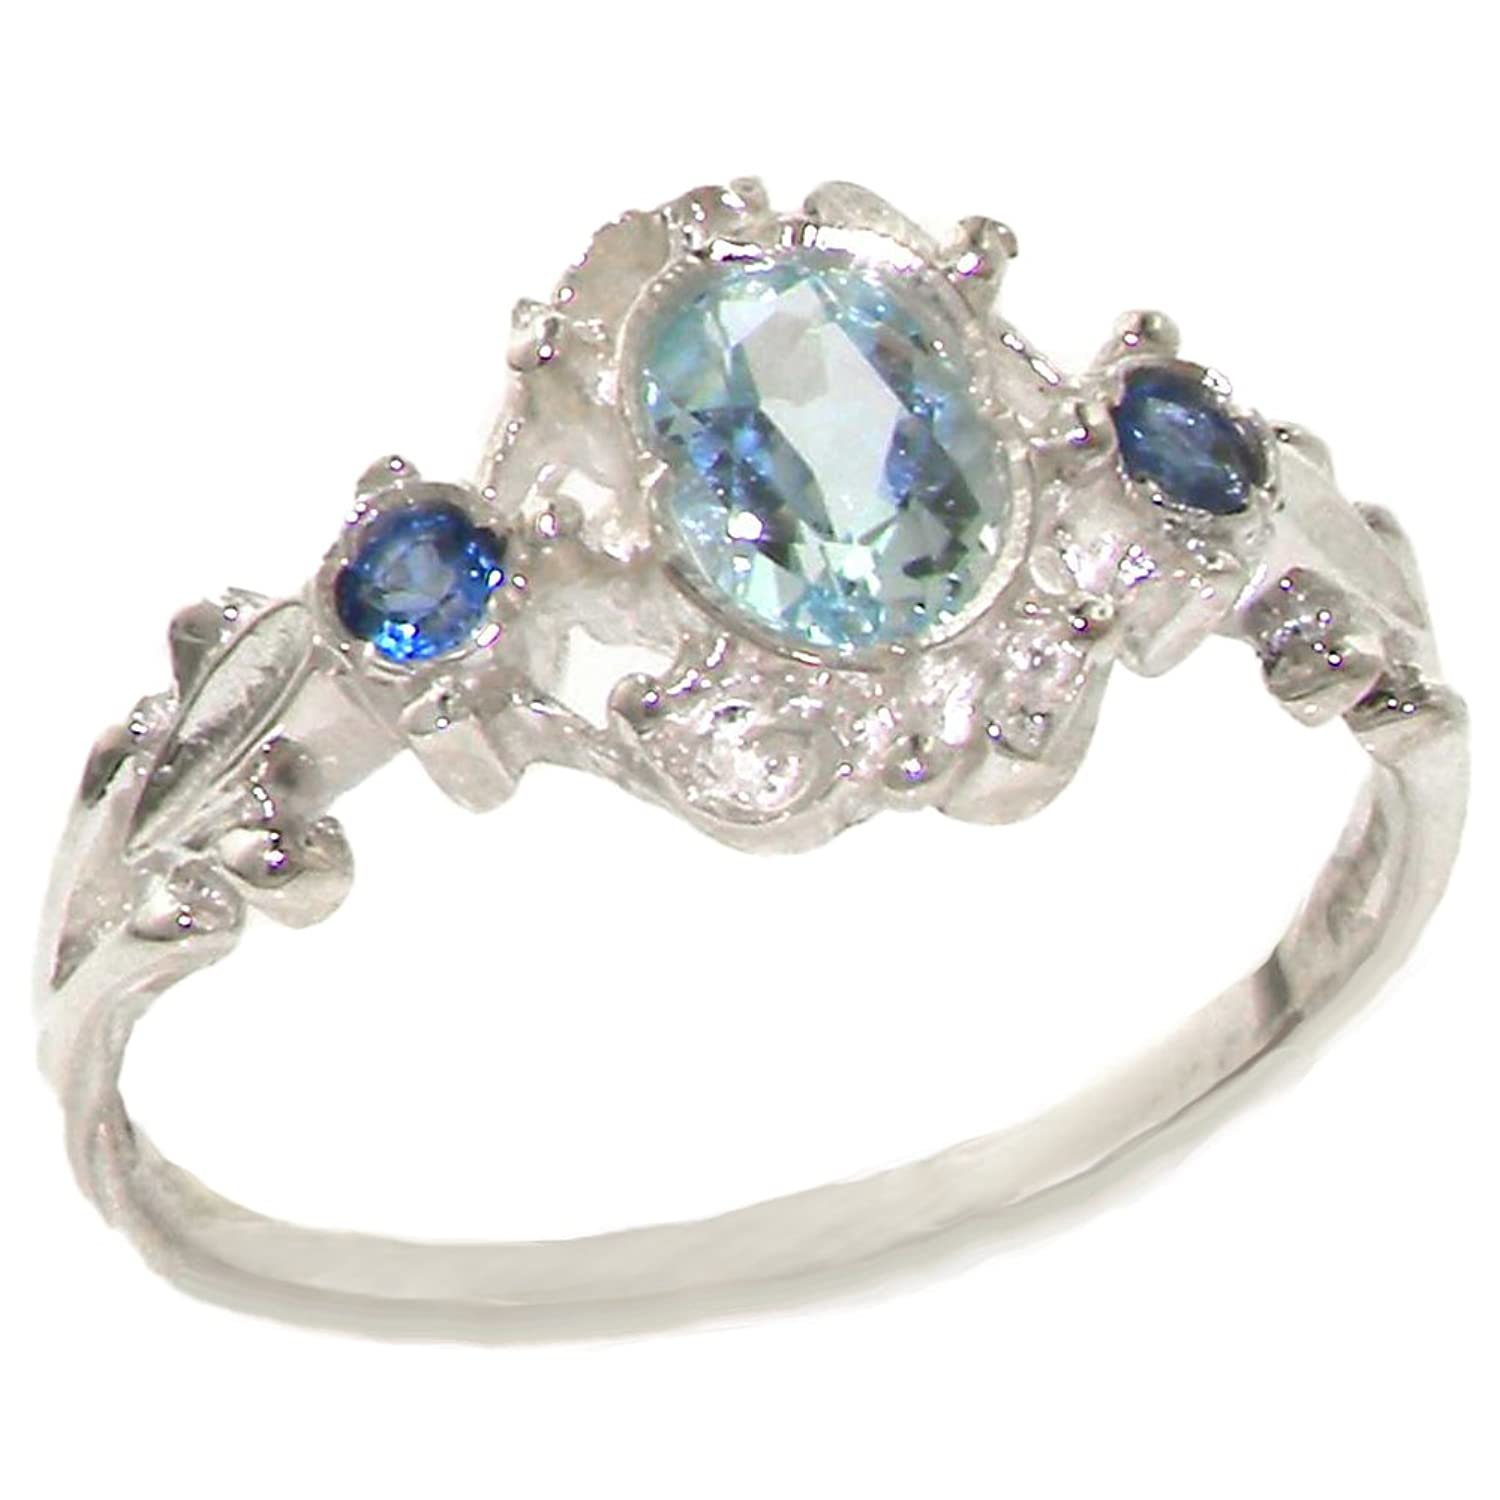 shop white ring gold on six set blue rings sunday in hand island a stone prongs natural aquamarine engagement with